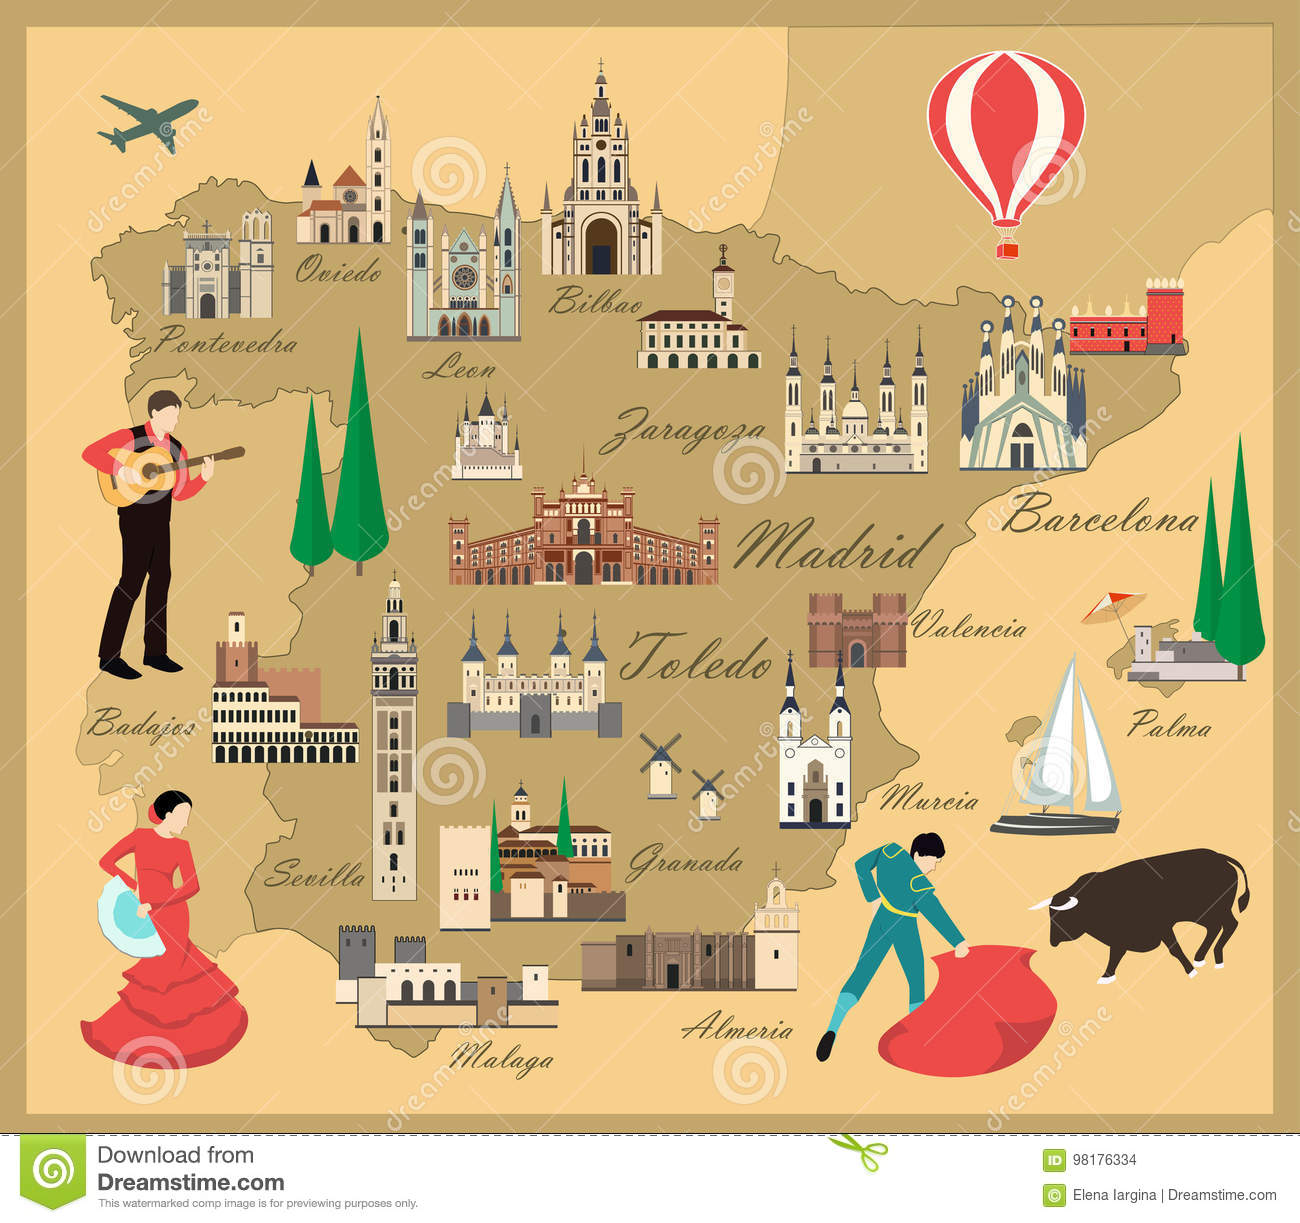 Travel Map Of Spain.Spain Travel Map With Sights Stock Vector Illustration Of Guitar